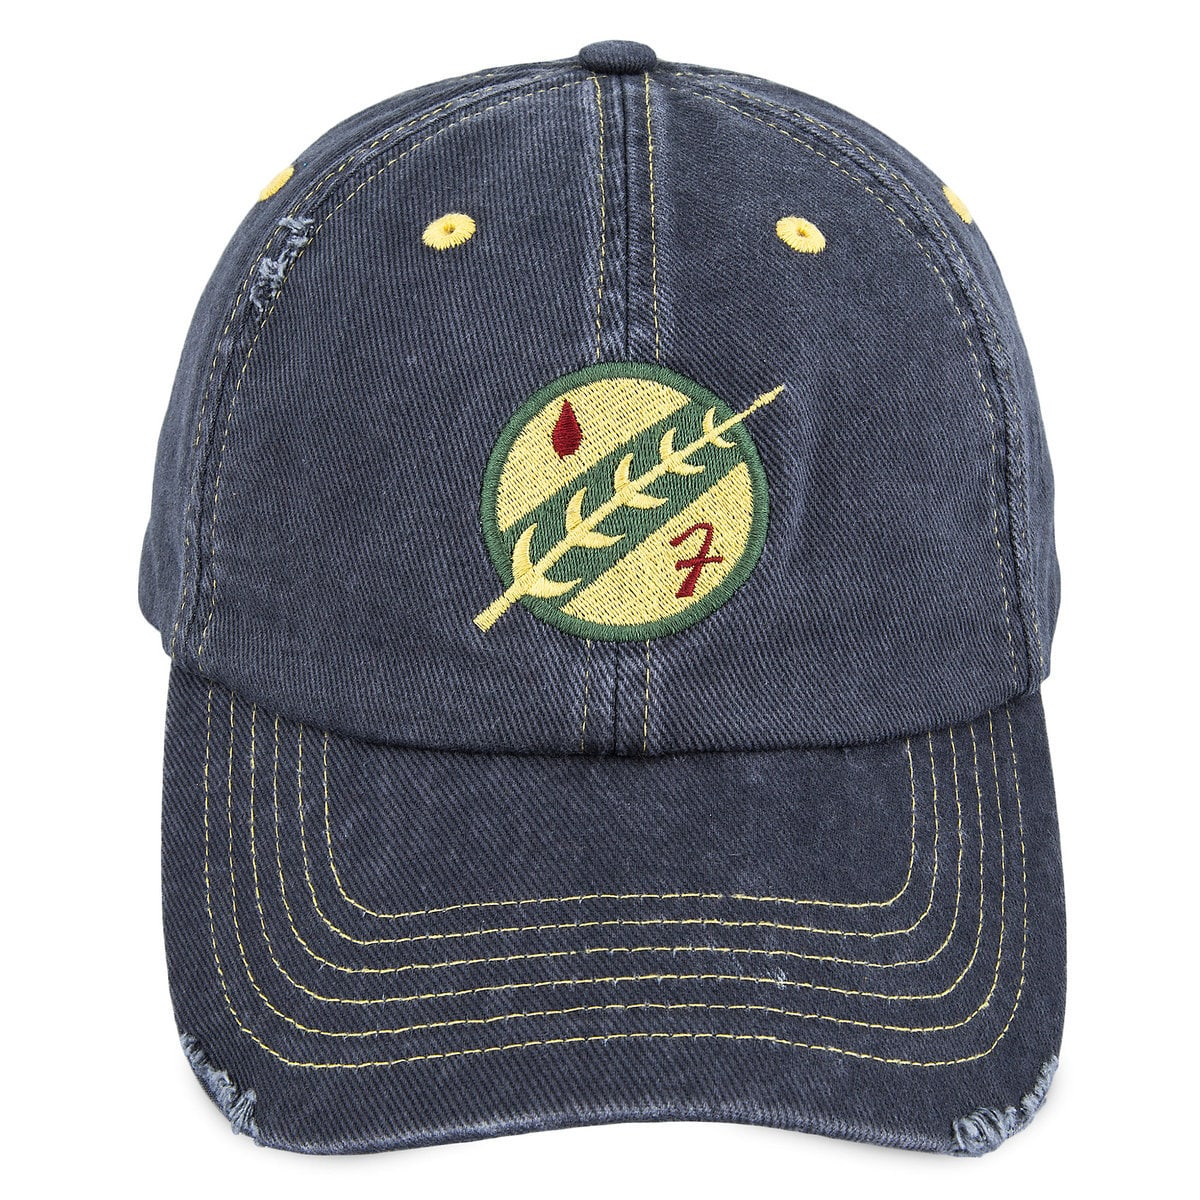 7ad748bee1d9b Product Image of Boba Fett Baseball Cap for Adults - Star Wars   1